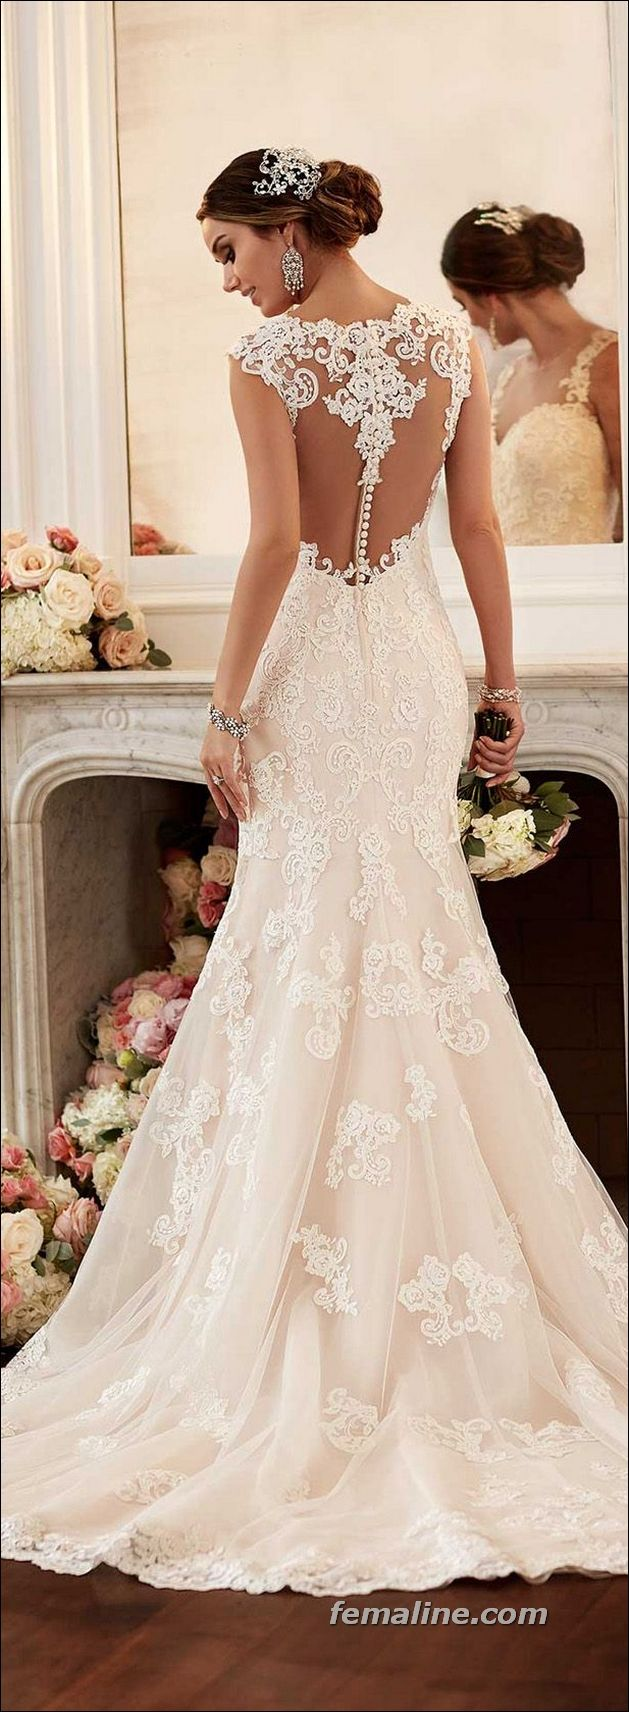 Home 187 posts 187 articles 187 hair styles 187 different hairstyles - 187 Ideas For Spring Wedding Dresses 2017